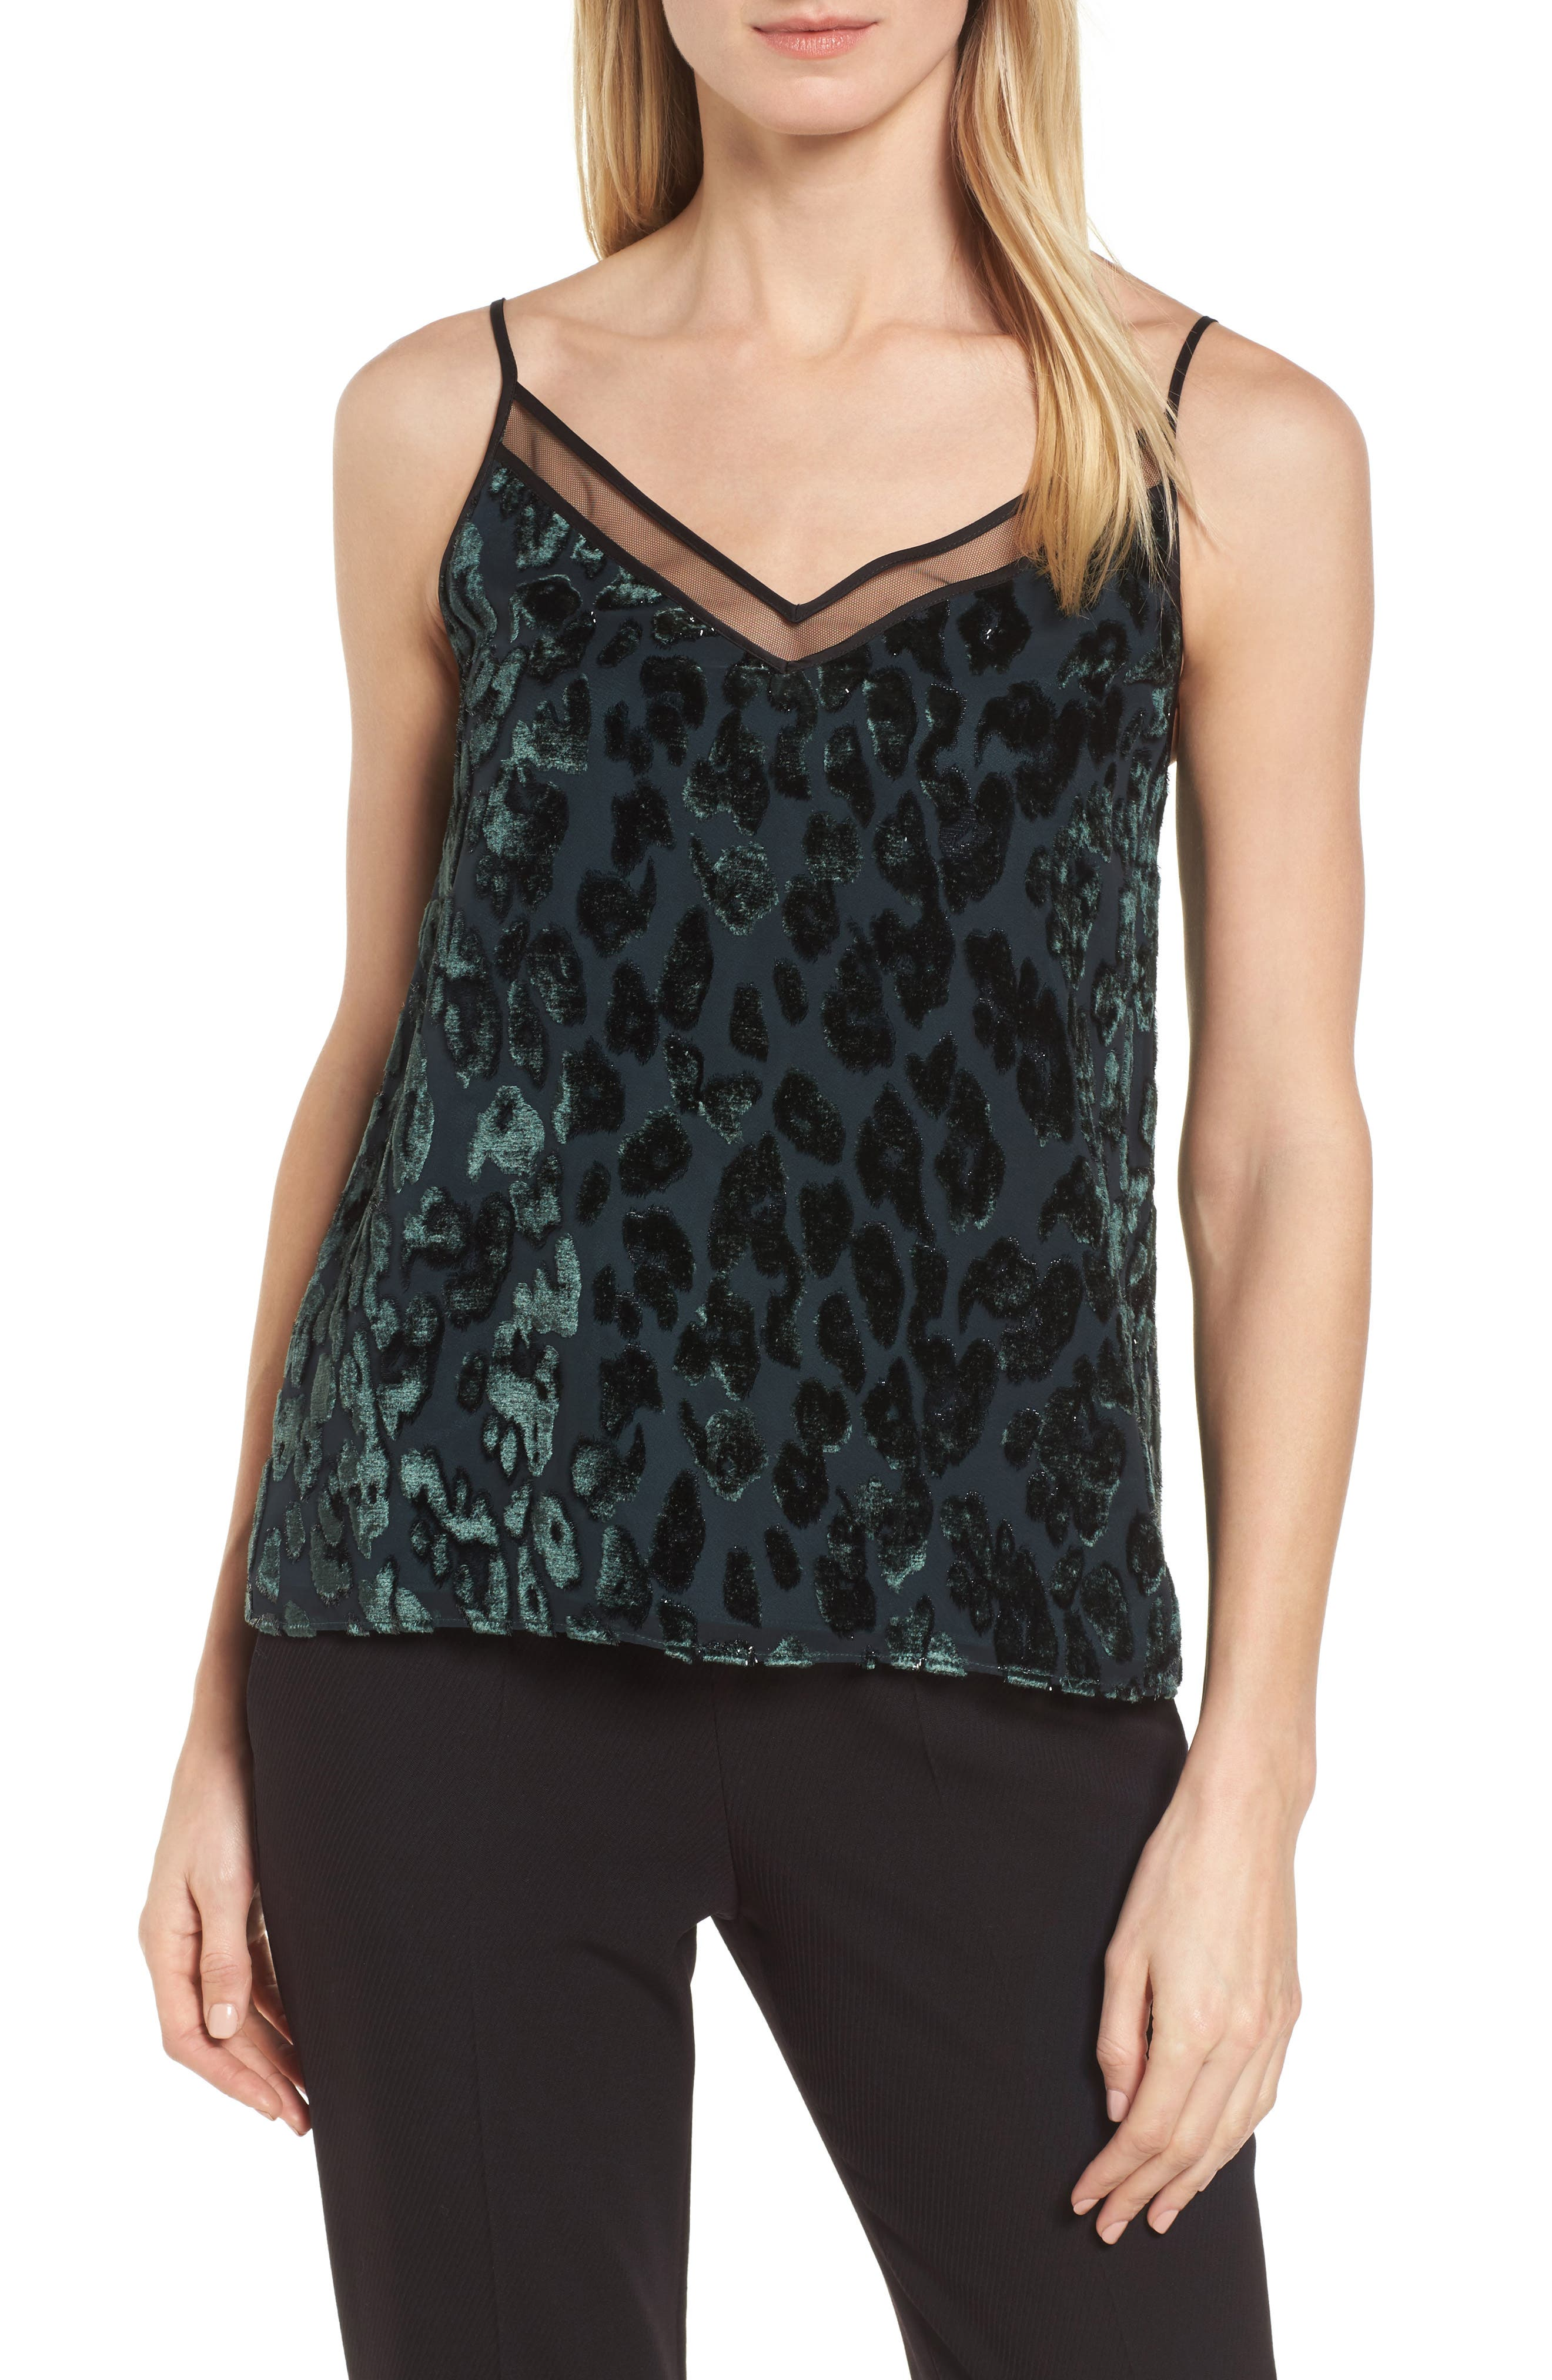 Ilomea Metallic Velvet Camisole,                             Main thumbnail 1, color,